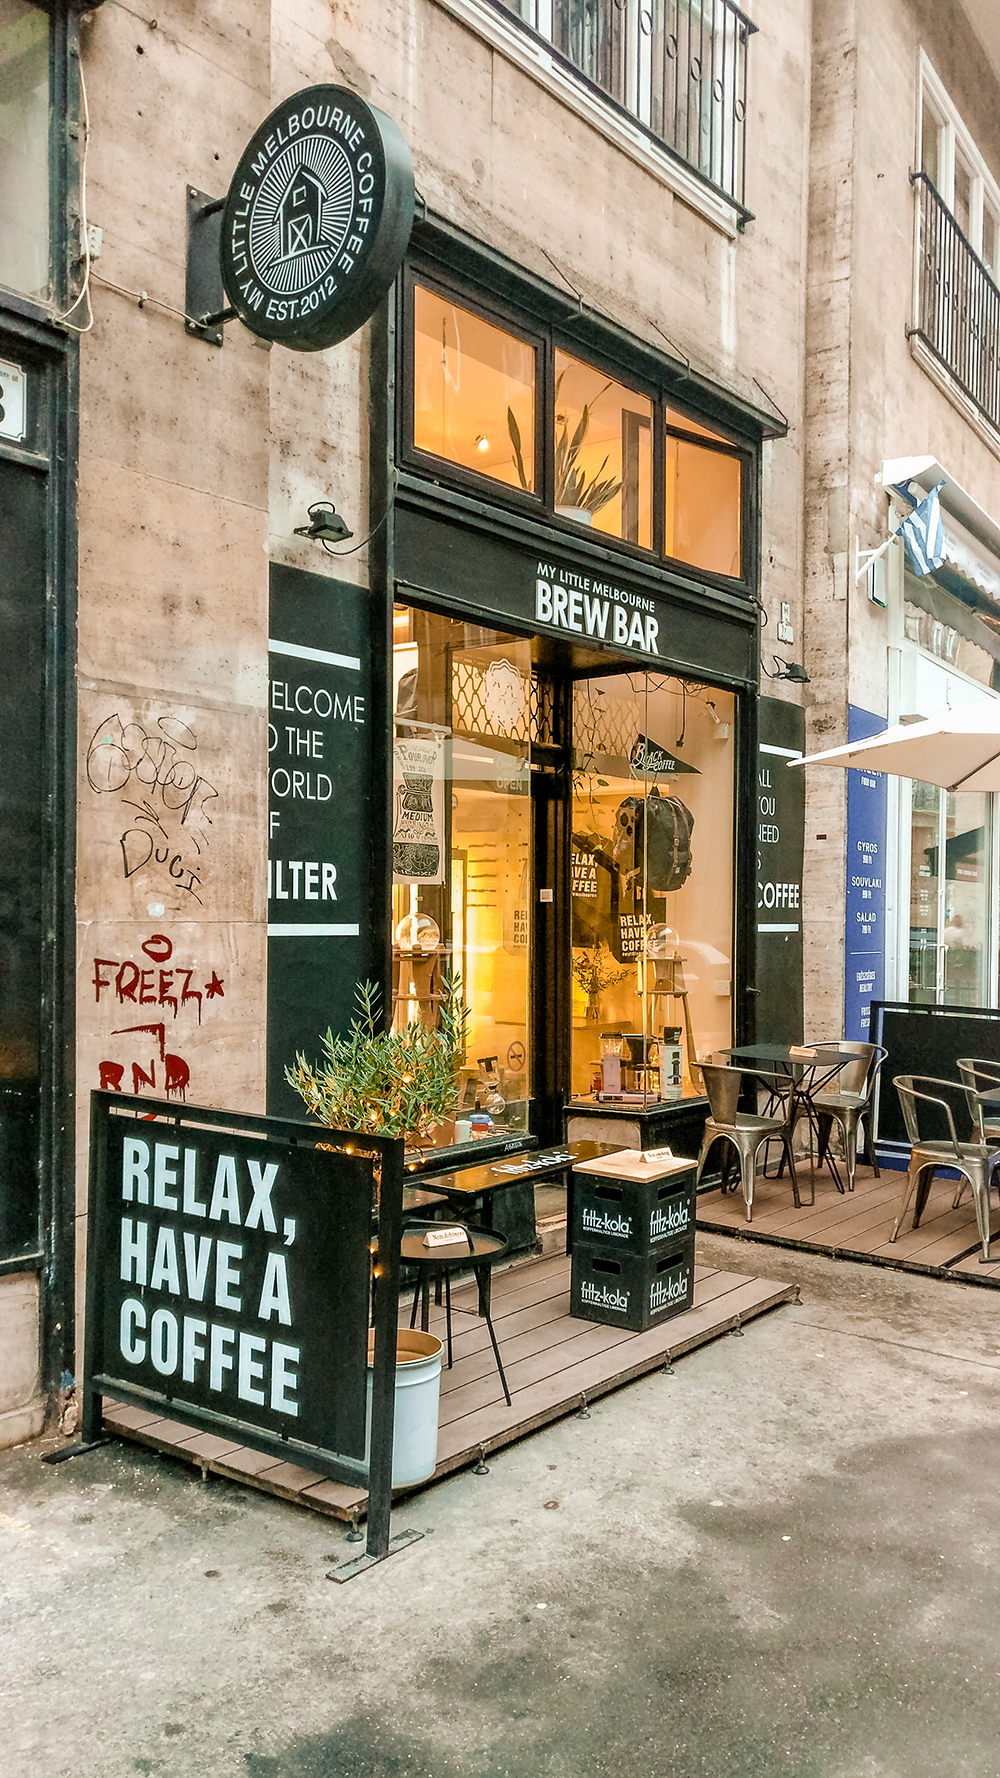 My Little Melbourne Coffee and Brew Bar - Where to drink the best specialty coffee in Budapest, Hungary? | Aliz's Wonderland